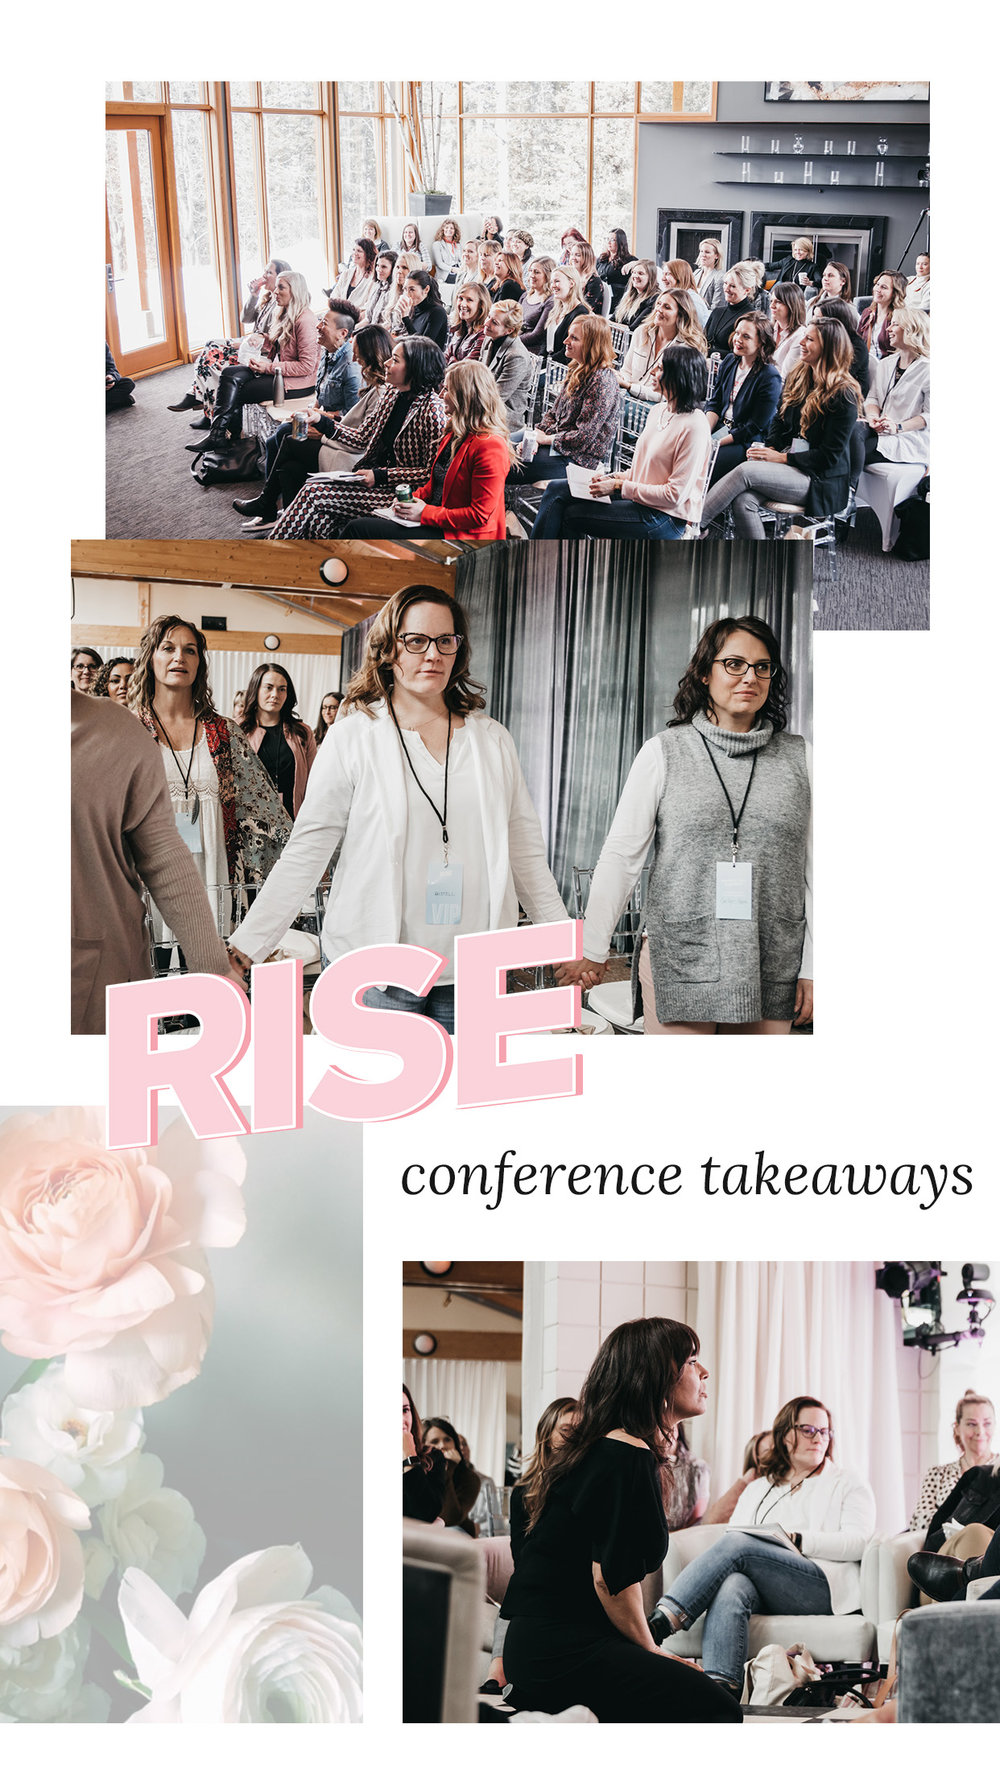 rise conference takeaways.jpg